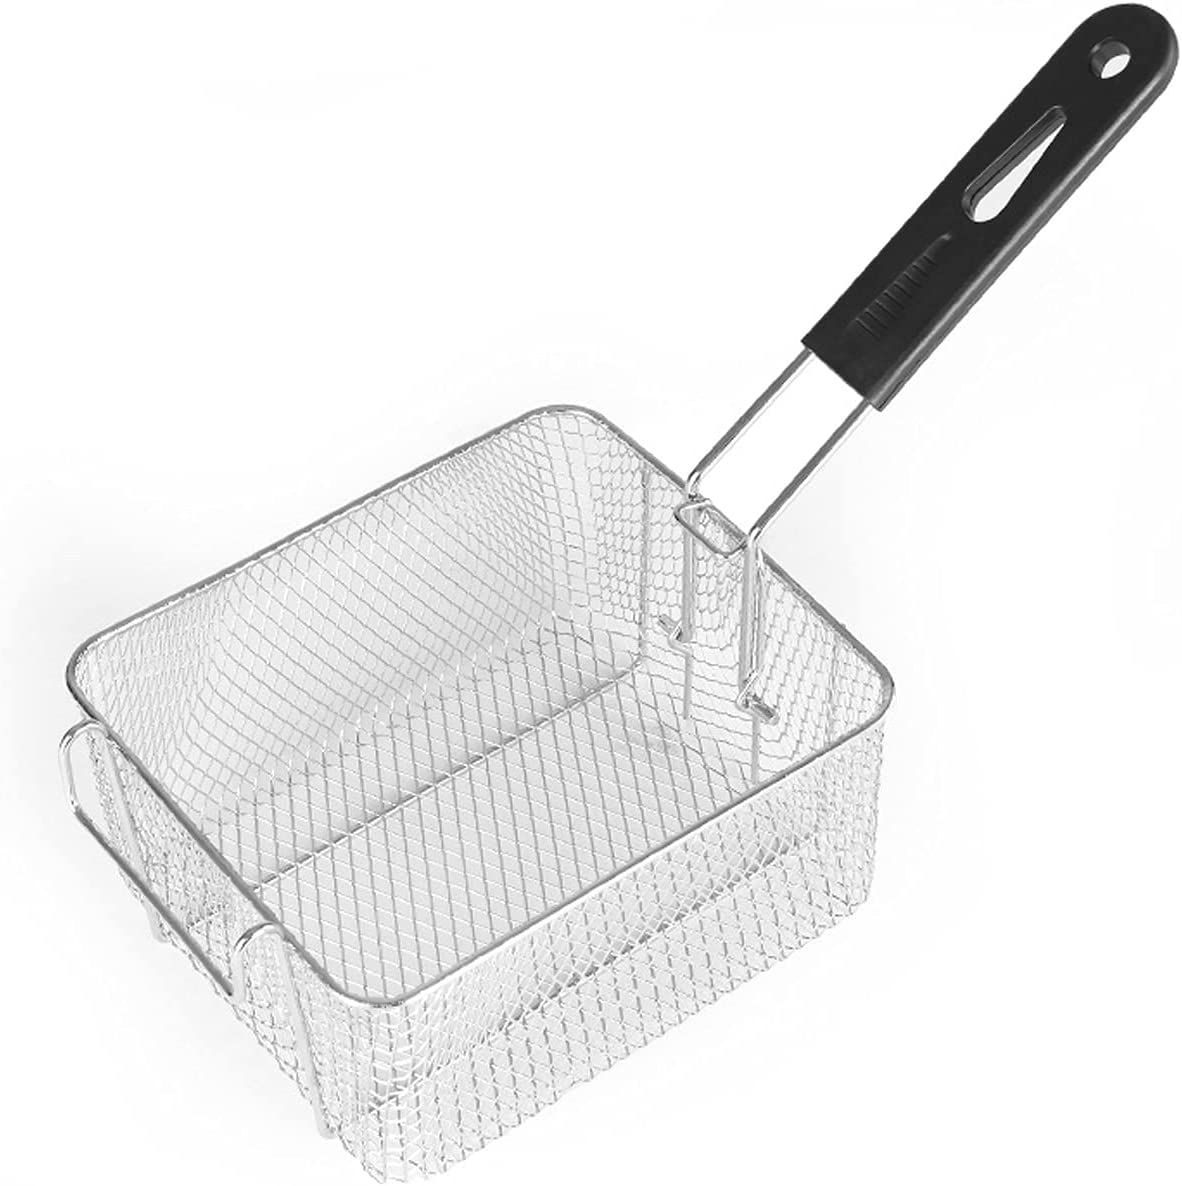 Fryer baskets Square Stainless Steel Basket Popular popular Detachab with Frying Max 63% OFF